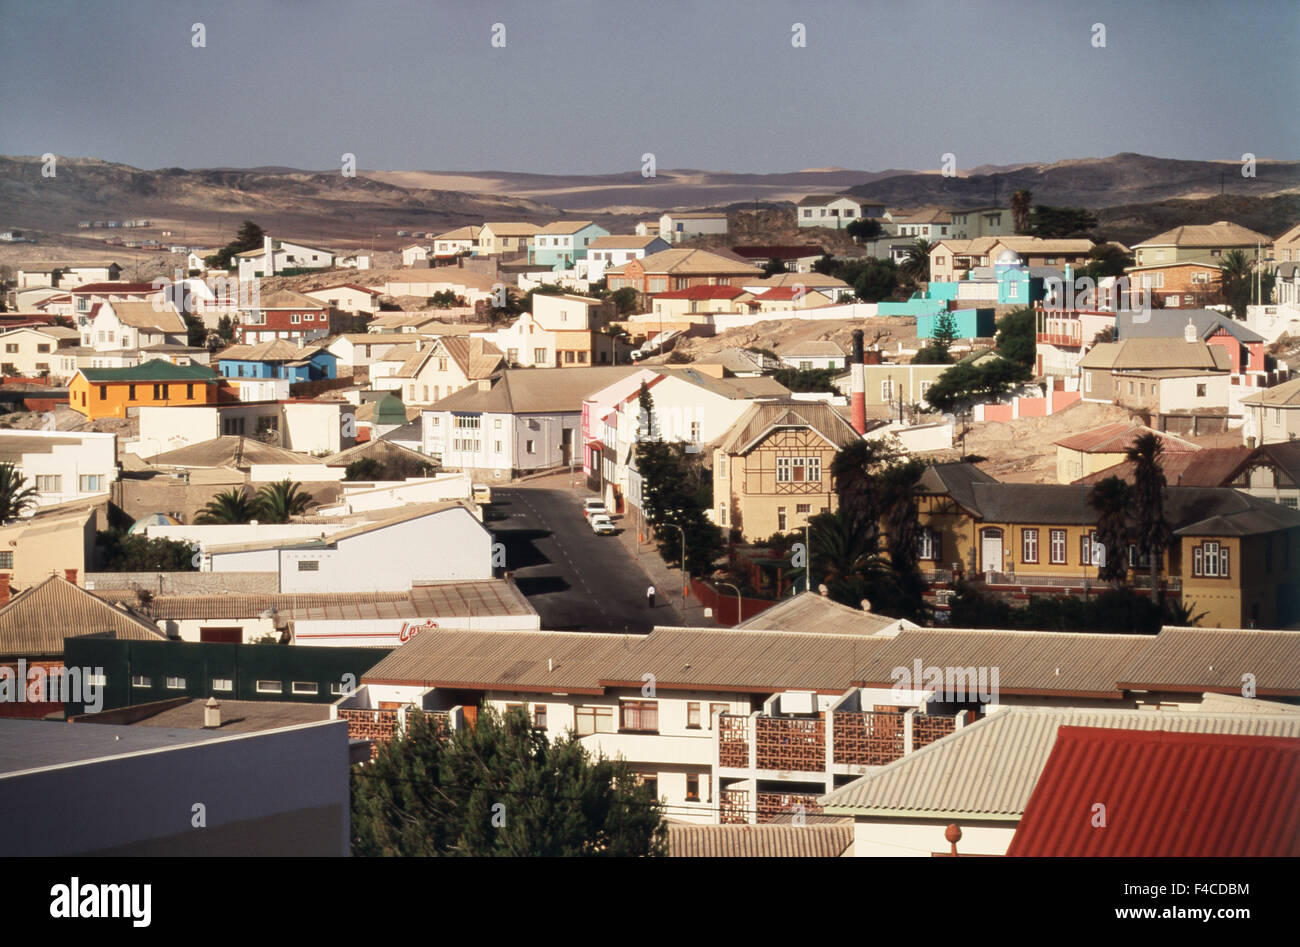 Namibia, Luderitzbucht (Luderitz), south coast, German colonial architecture at Town view. (Large format sizes available) - Stock Image